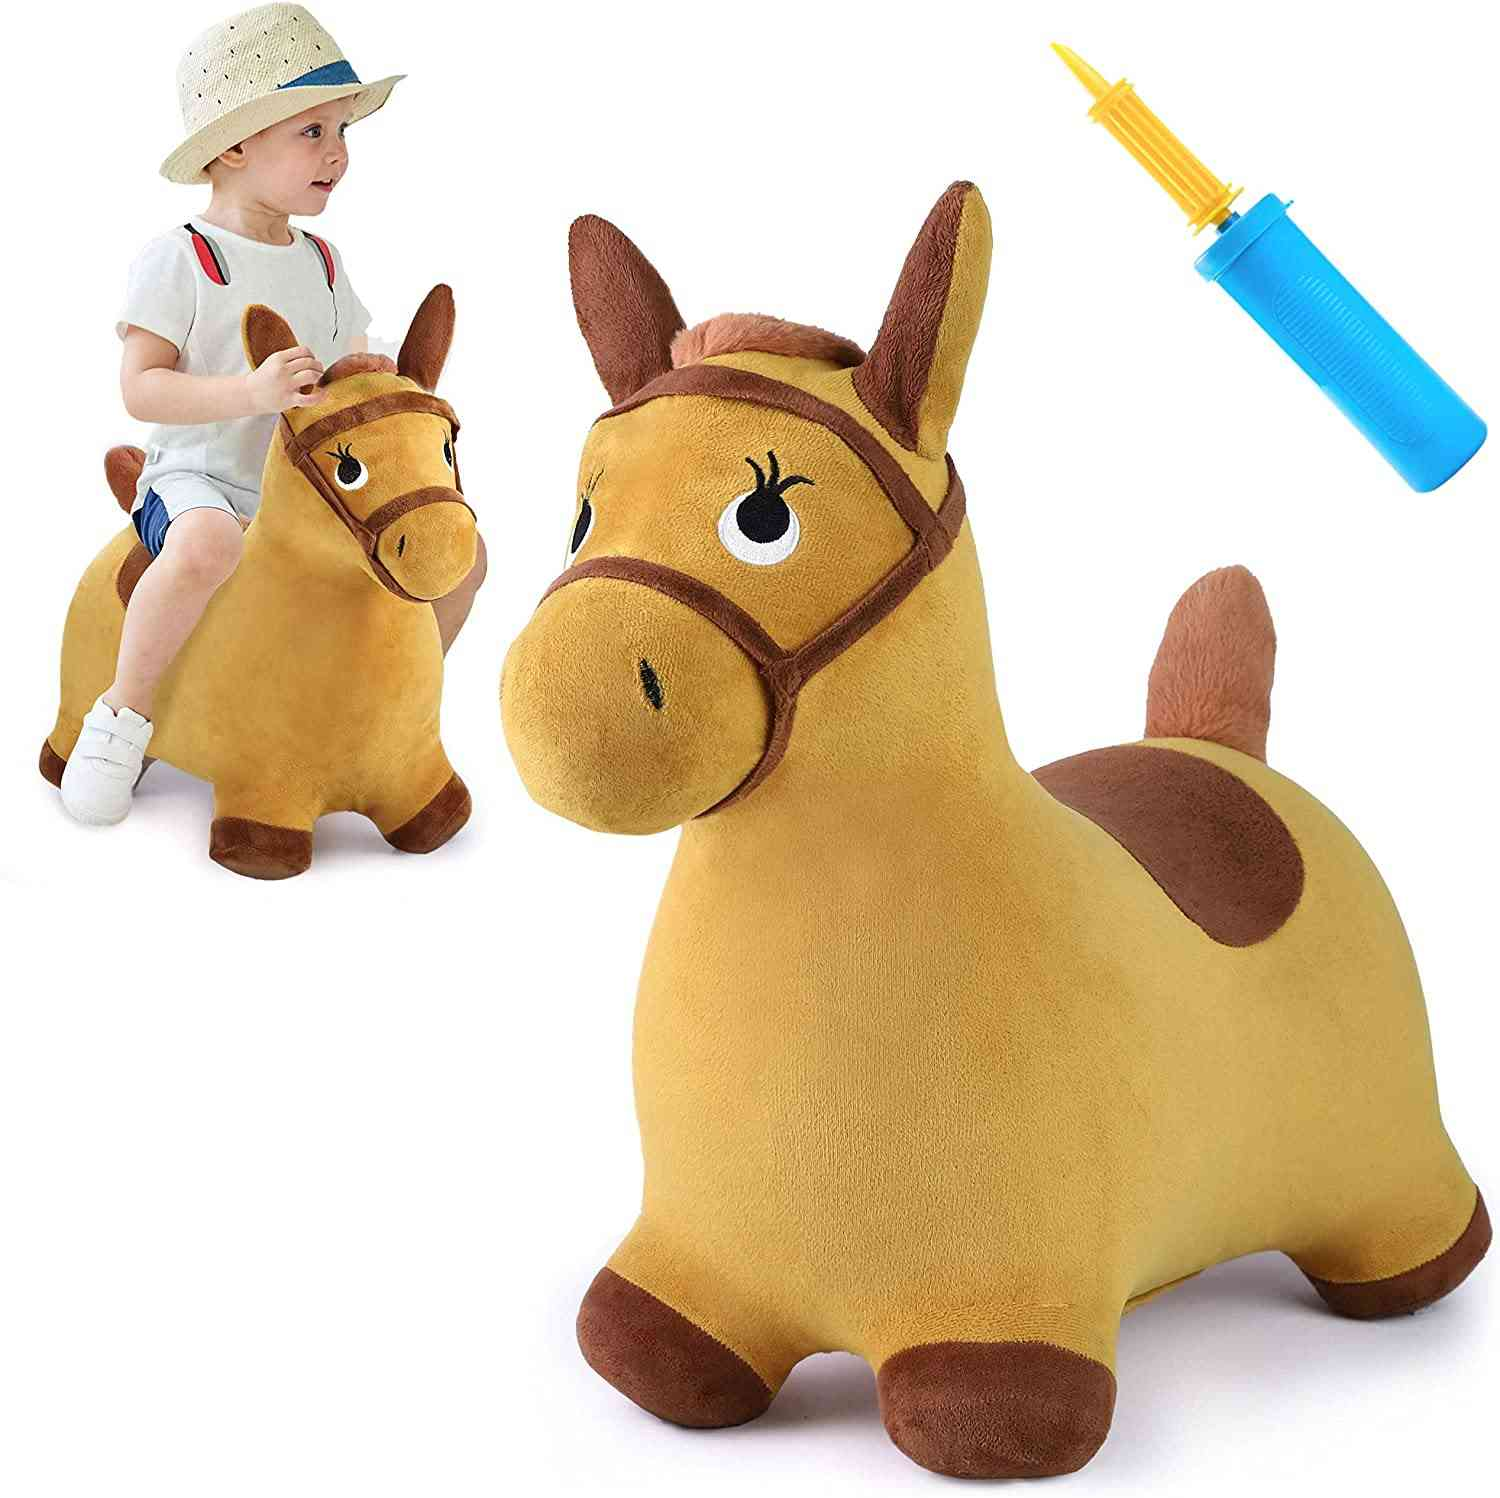 Kids Ride On Bouncy Play Yellow Hopping Horse Plush Inflatable Hopper Birthday